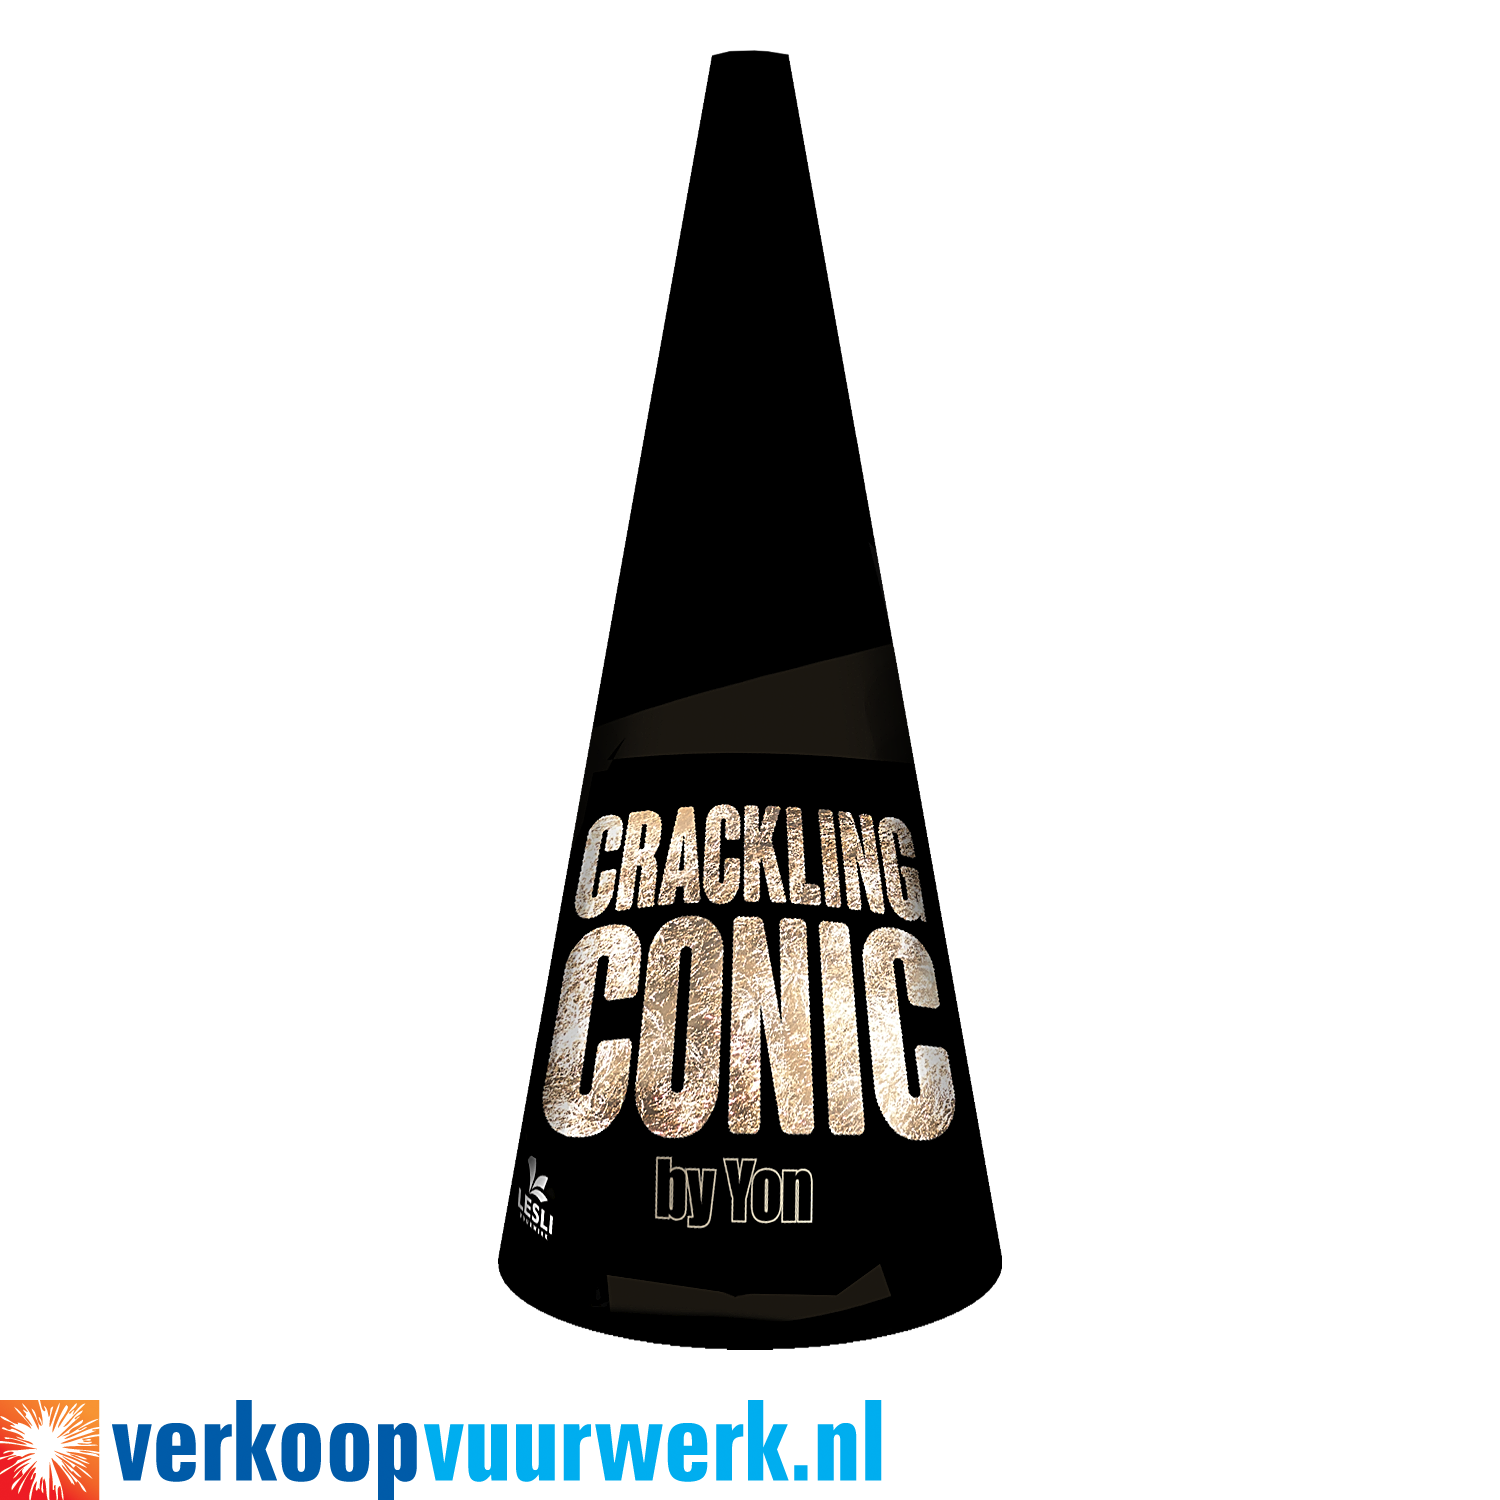 Crackling conic